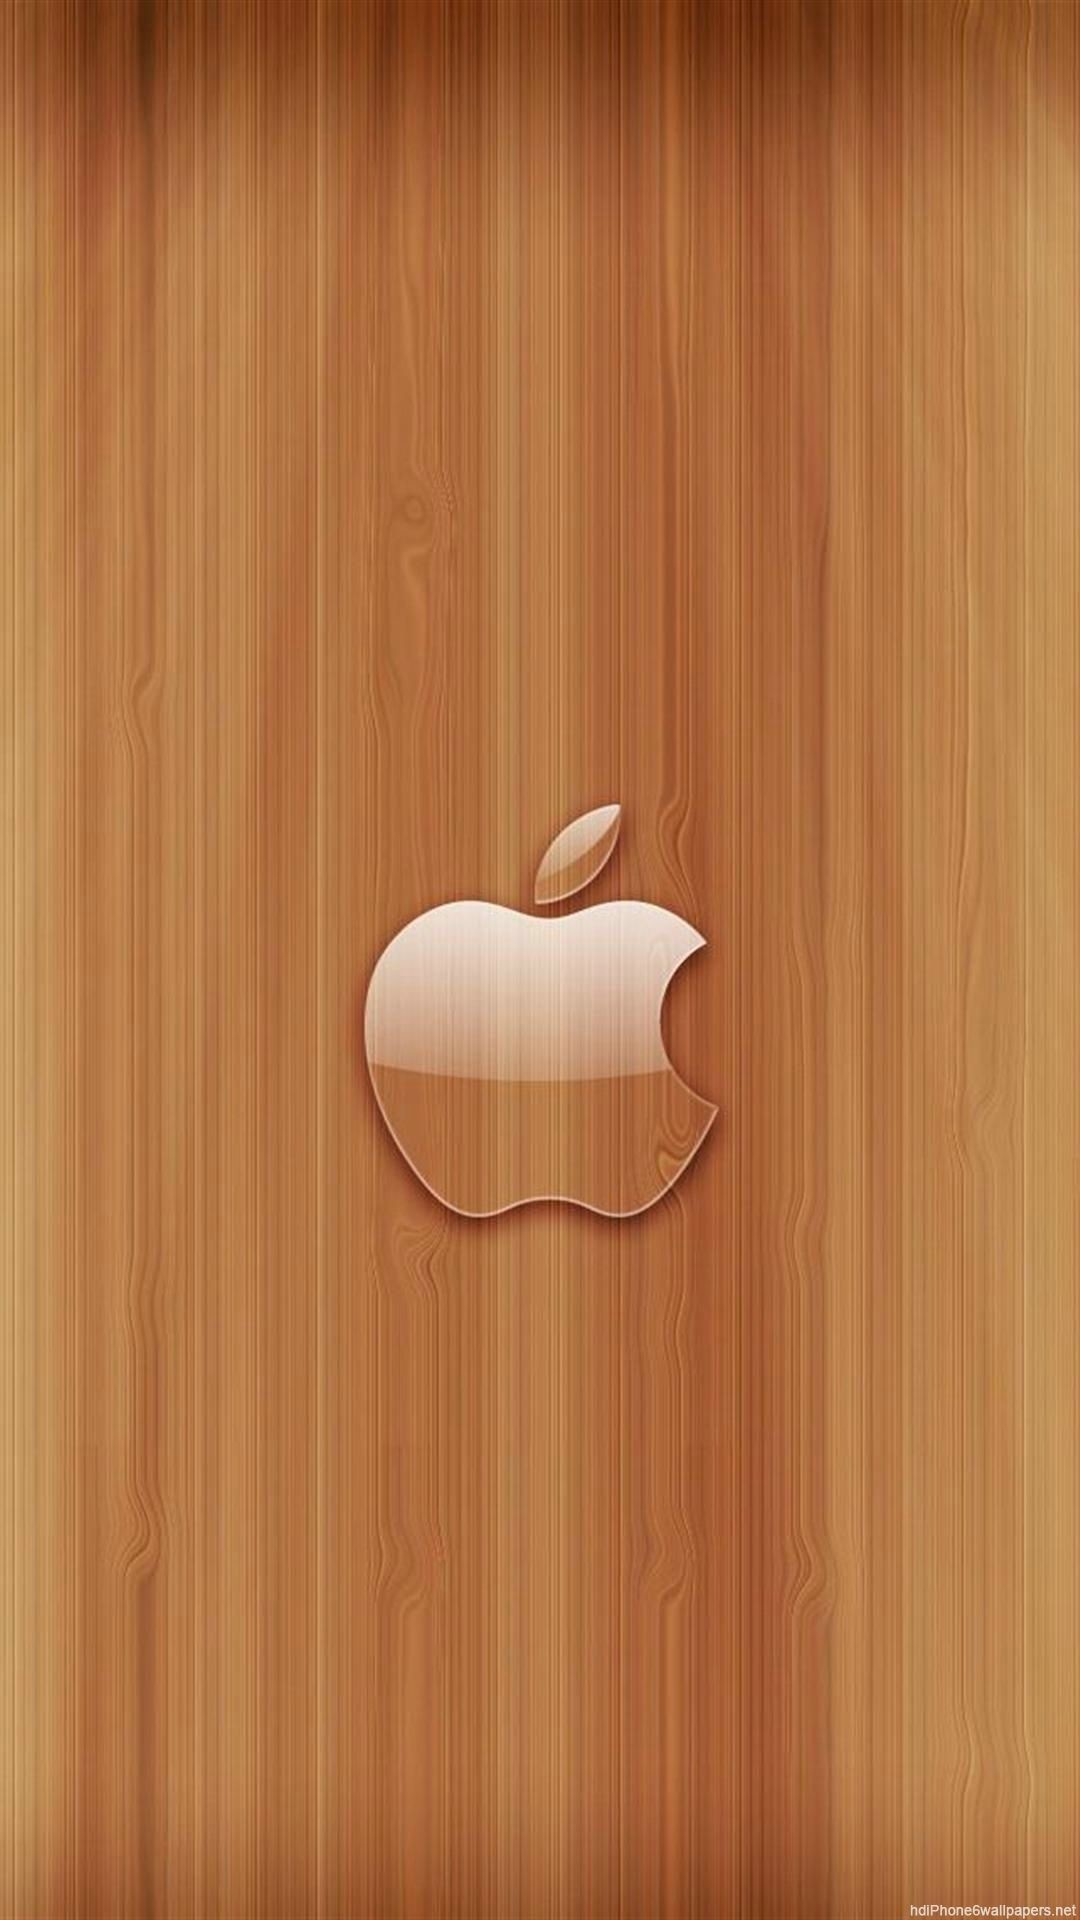 computer apple wood iPhone 6 wallpapers HD and 1080P 6 Plus Wallpapers